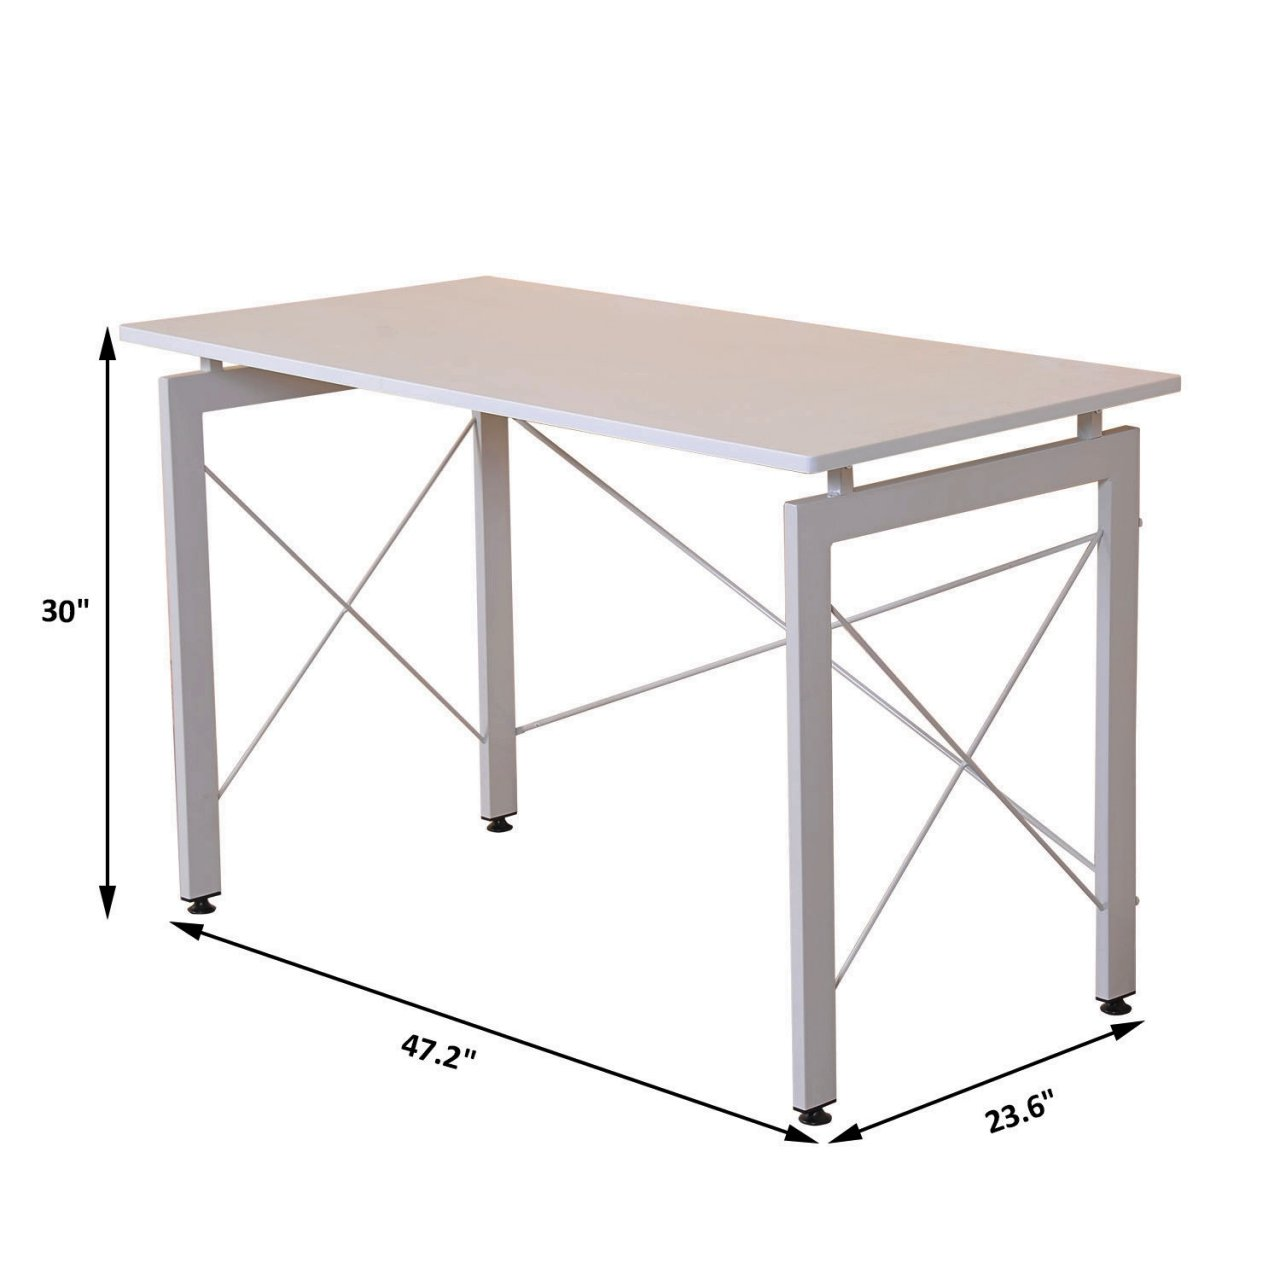 Laptop Computer Wooden Desk Study Writing Table Workstation Home Office Decor Furniture/ White #1036c by Koonlert@shop